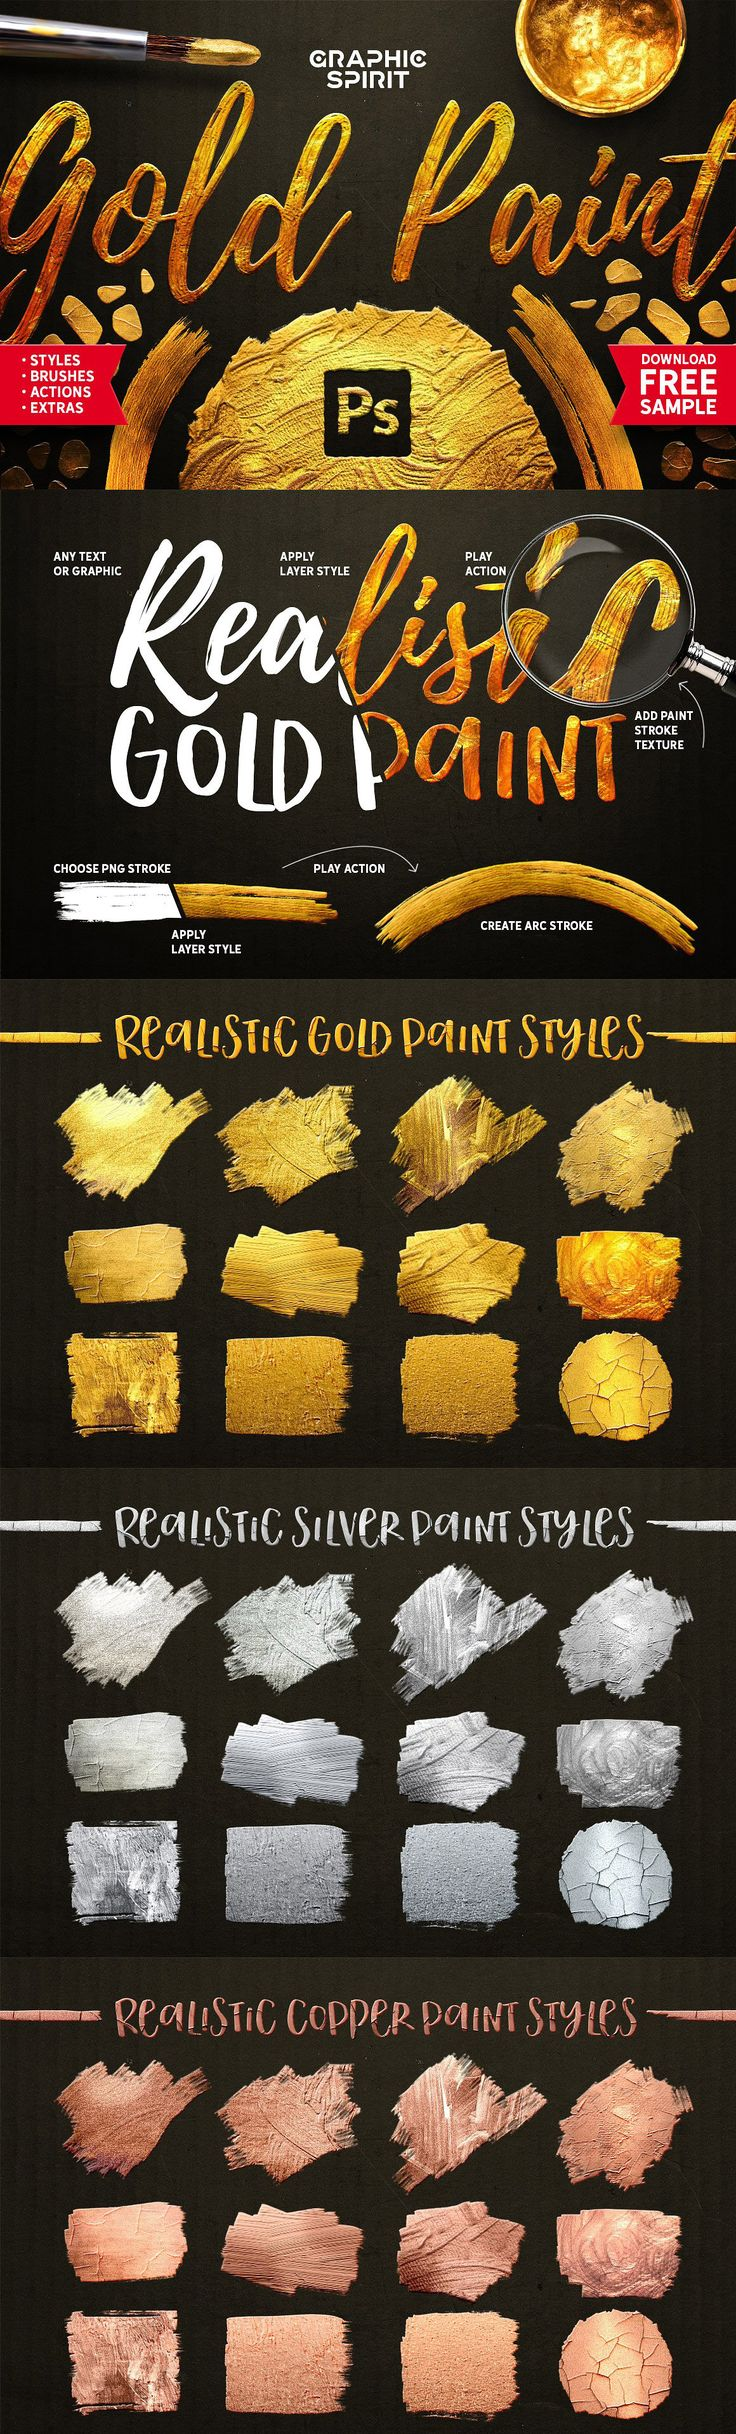 Gold Paint Effect for Photoshop. There is everything you need here: layer styles, brushes, actions, backgrounds, .PNG graphics, free fonts list, 5 ready-made templates with text that you just need to replace with your own ones. This set is suitable for creating layouts of postcards, posters, web banners and more!